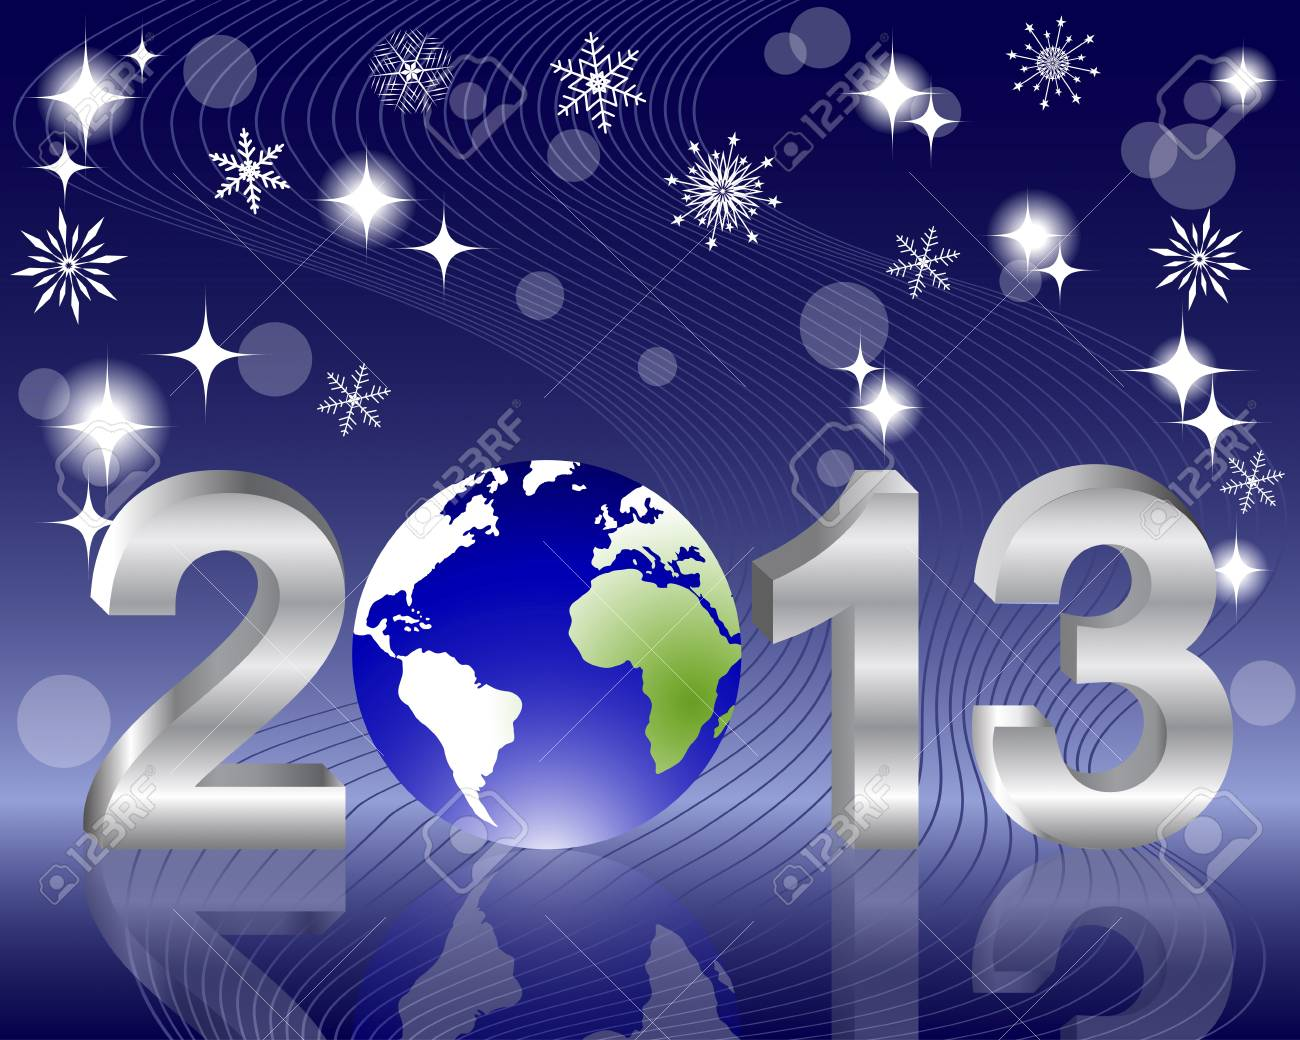 3d 2013 New Year with globe and reflection on the holiday background. Vector illustration. Stock Vector - 16537894